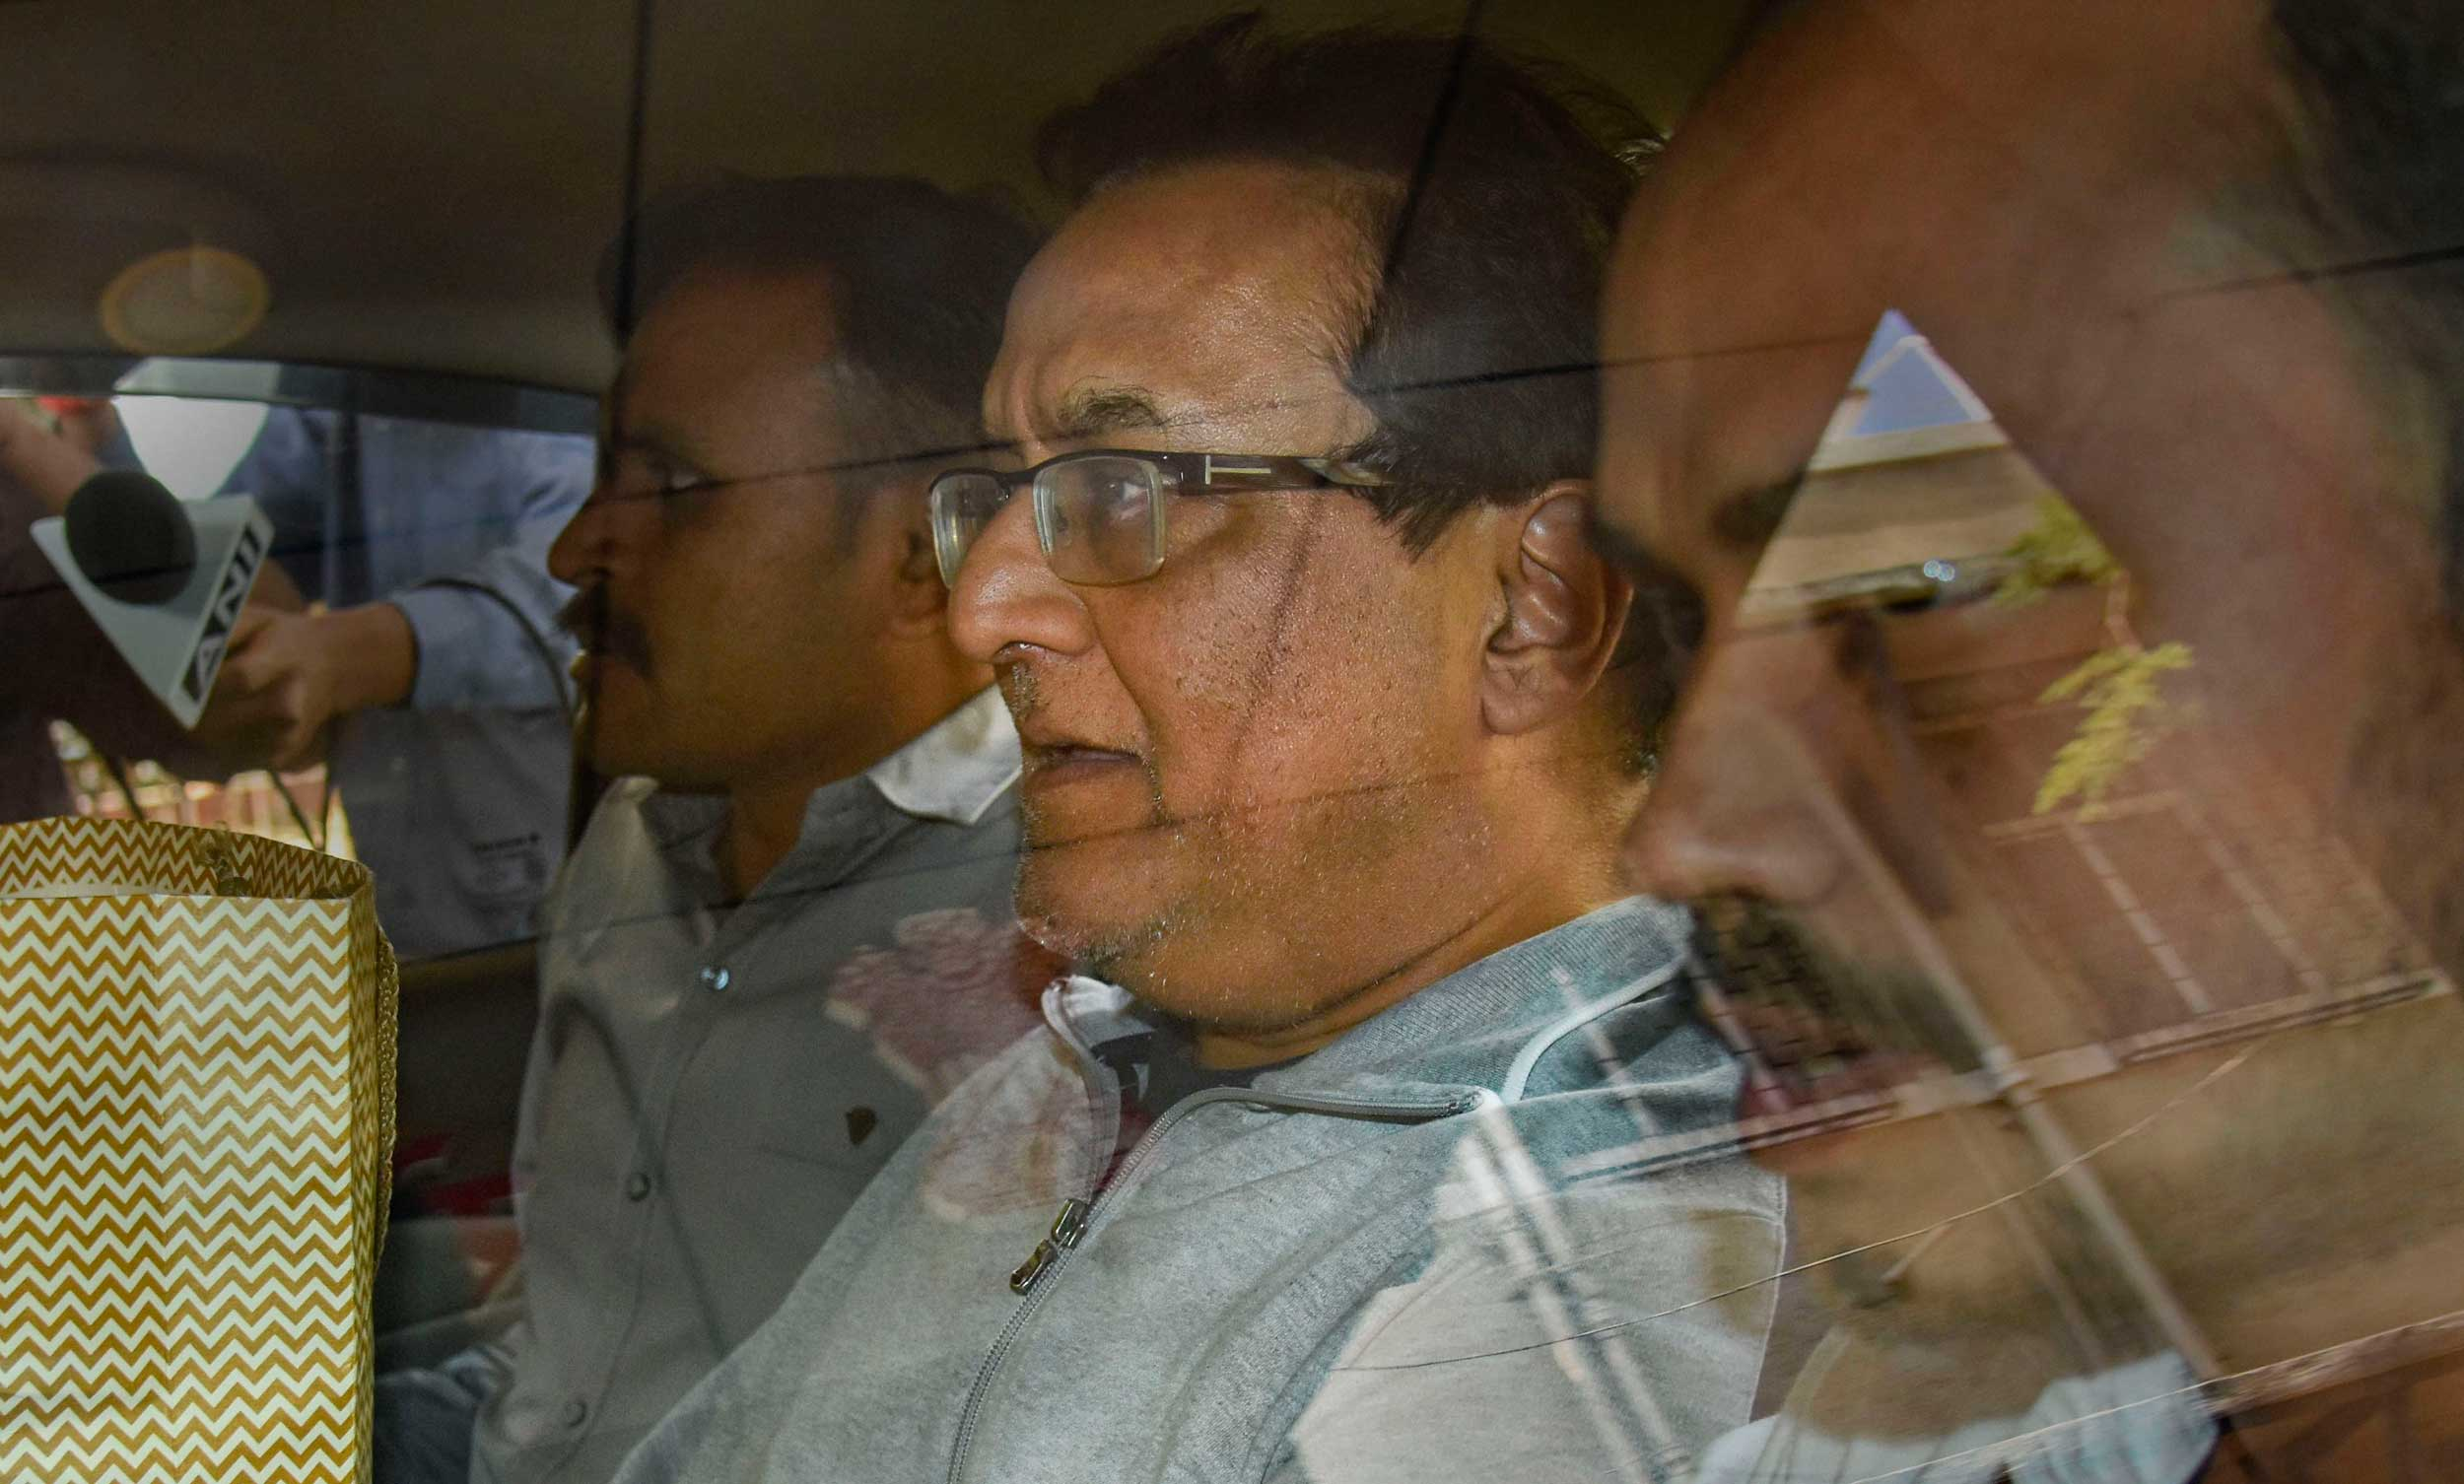 Yes Bank co-founder Rana Kapoor was arrested by the Enforcement Directorate in Mumbai on Sunday on the charge of money laundering.